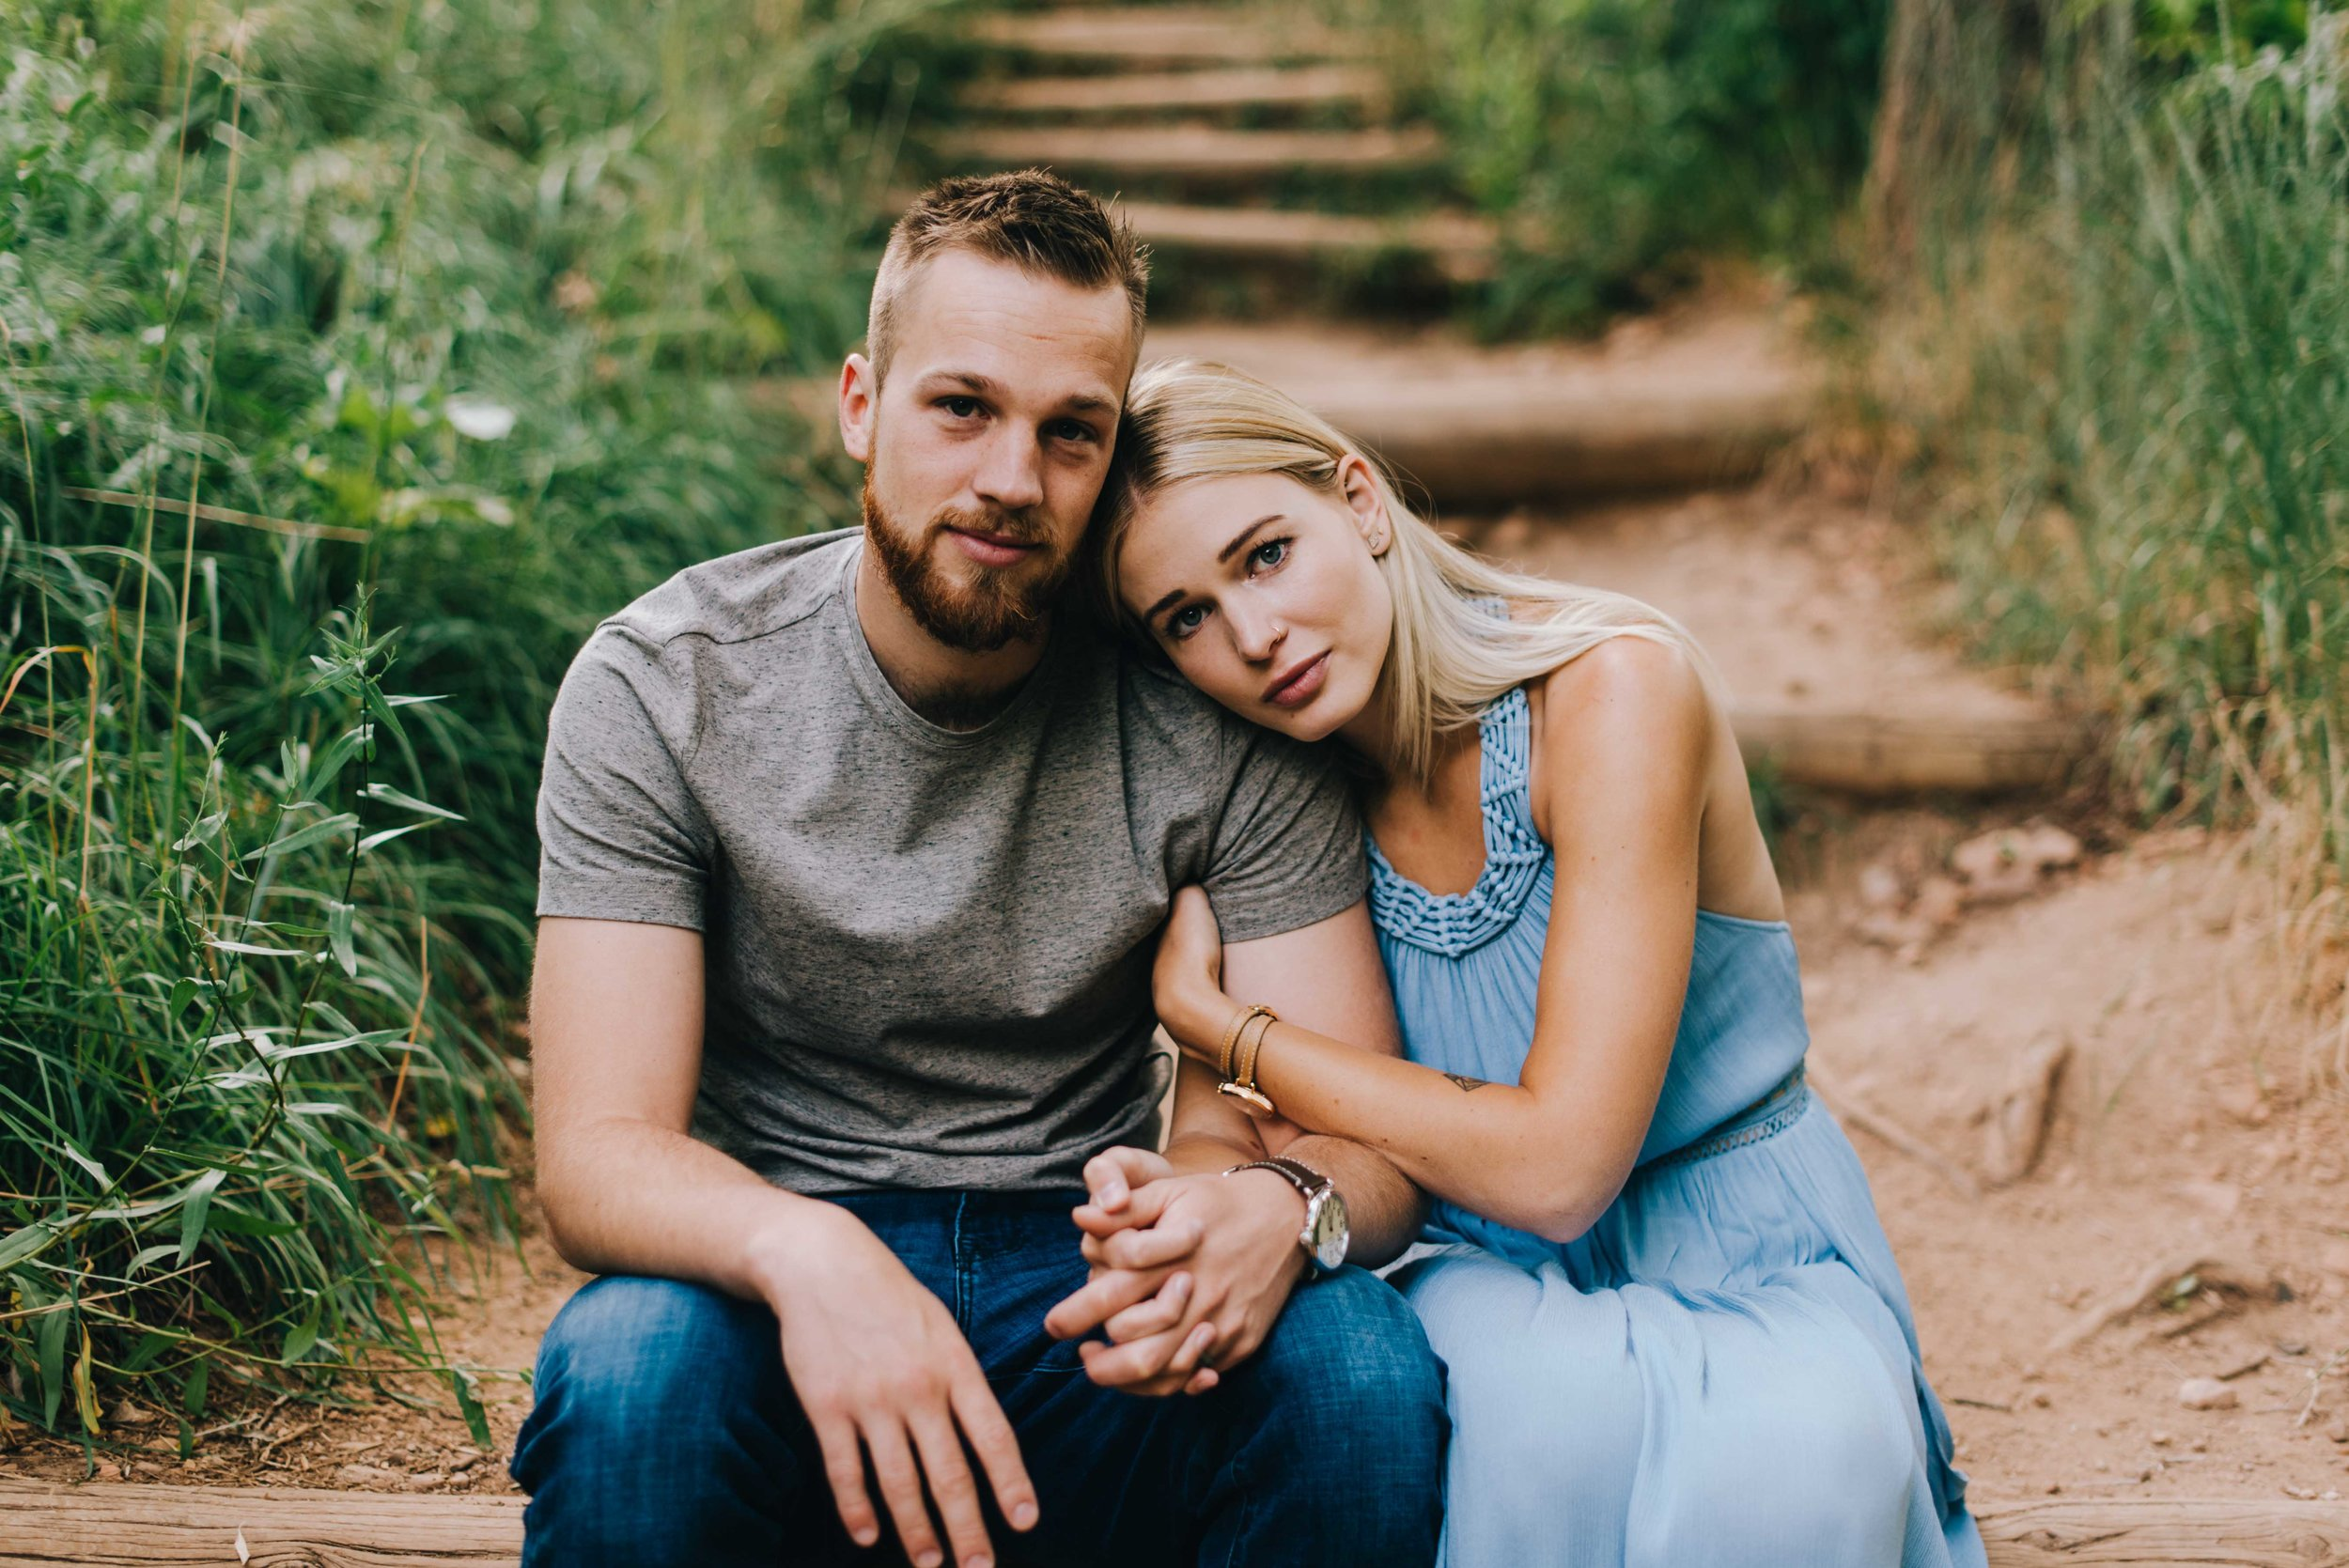 Connor and Betsy snuggling during their Boulder, Colorado engagement session